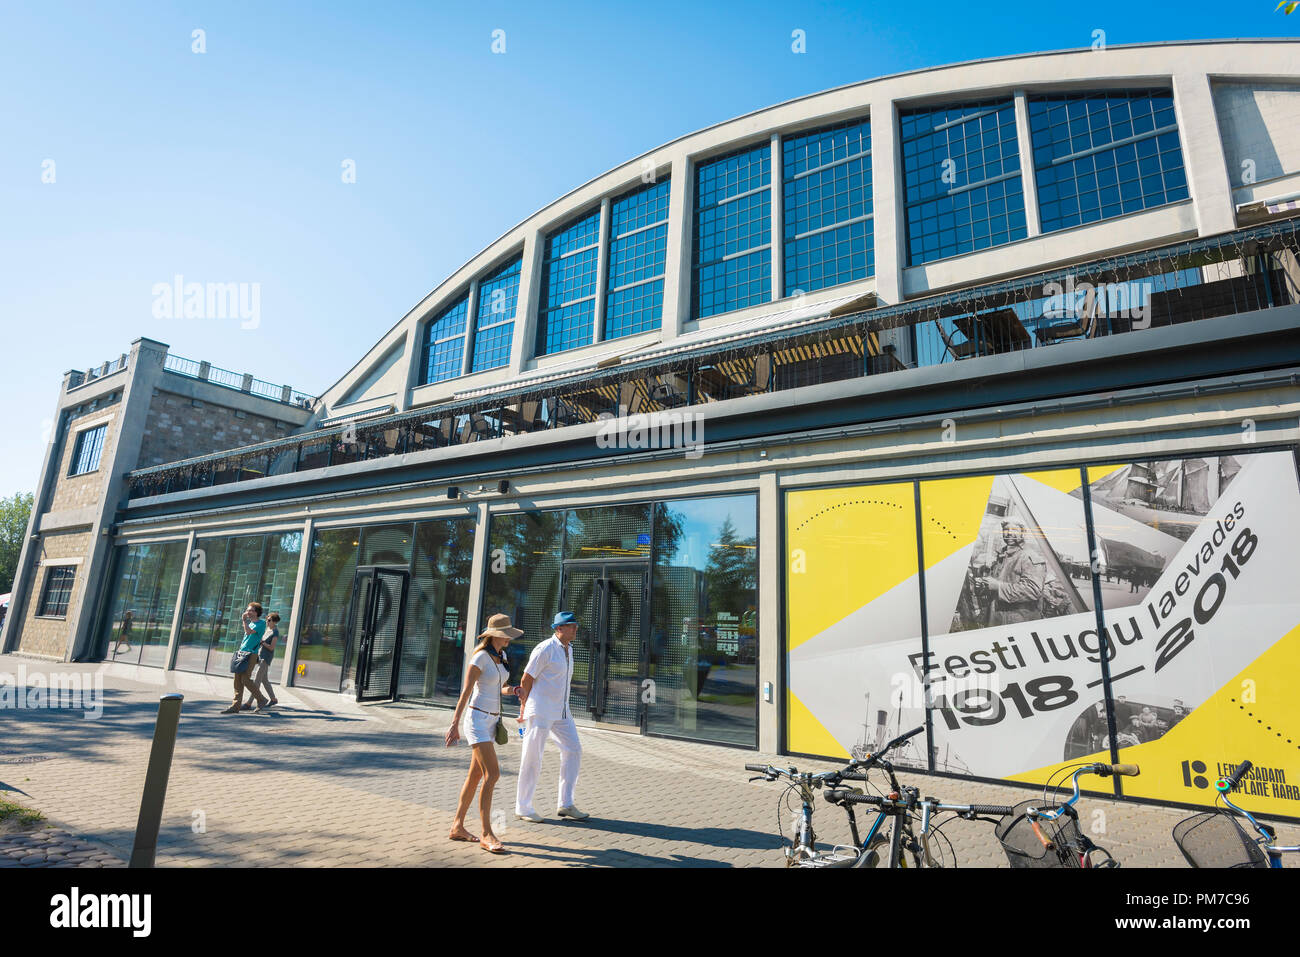 Tallinn Lennusadam, view of the entrance to the Lennusadam Seaplane Harbour Museum - part of the Estonia Maritime Museum - in Tallinn, Estonia. - Stock Image